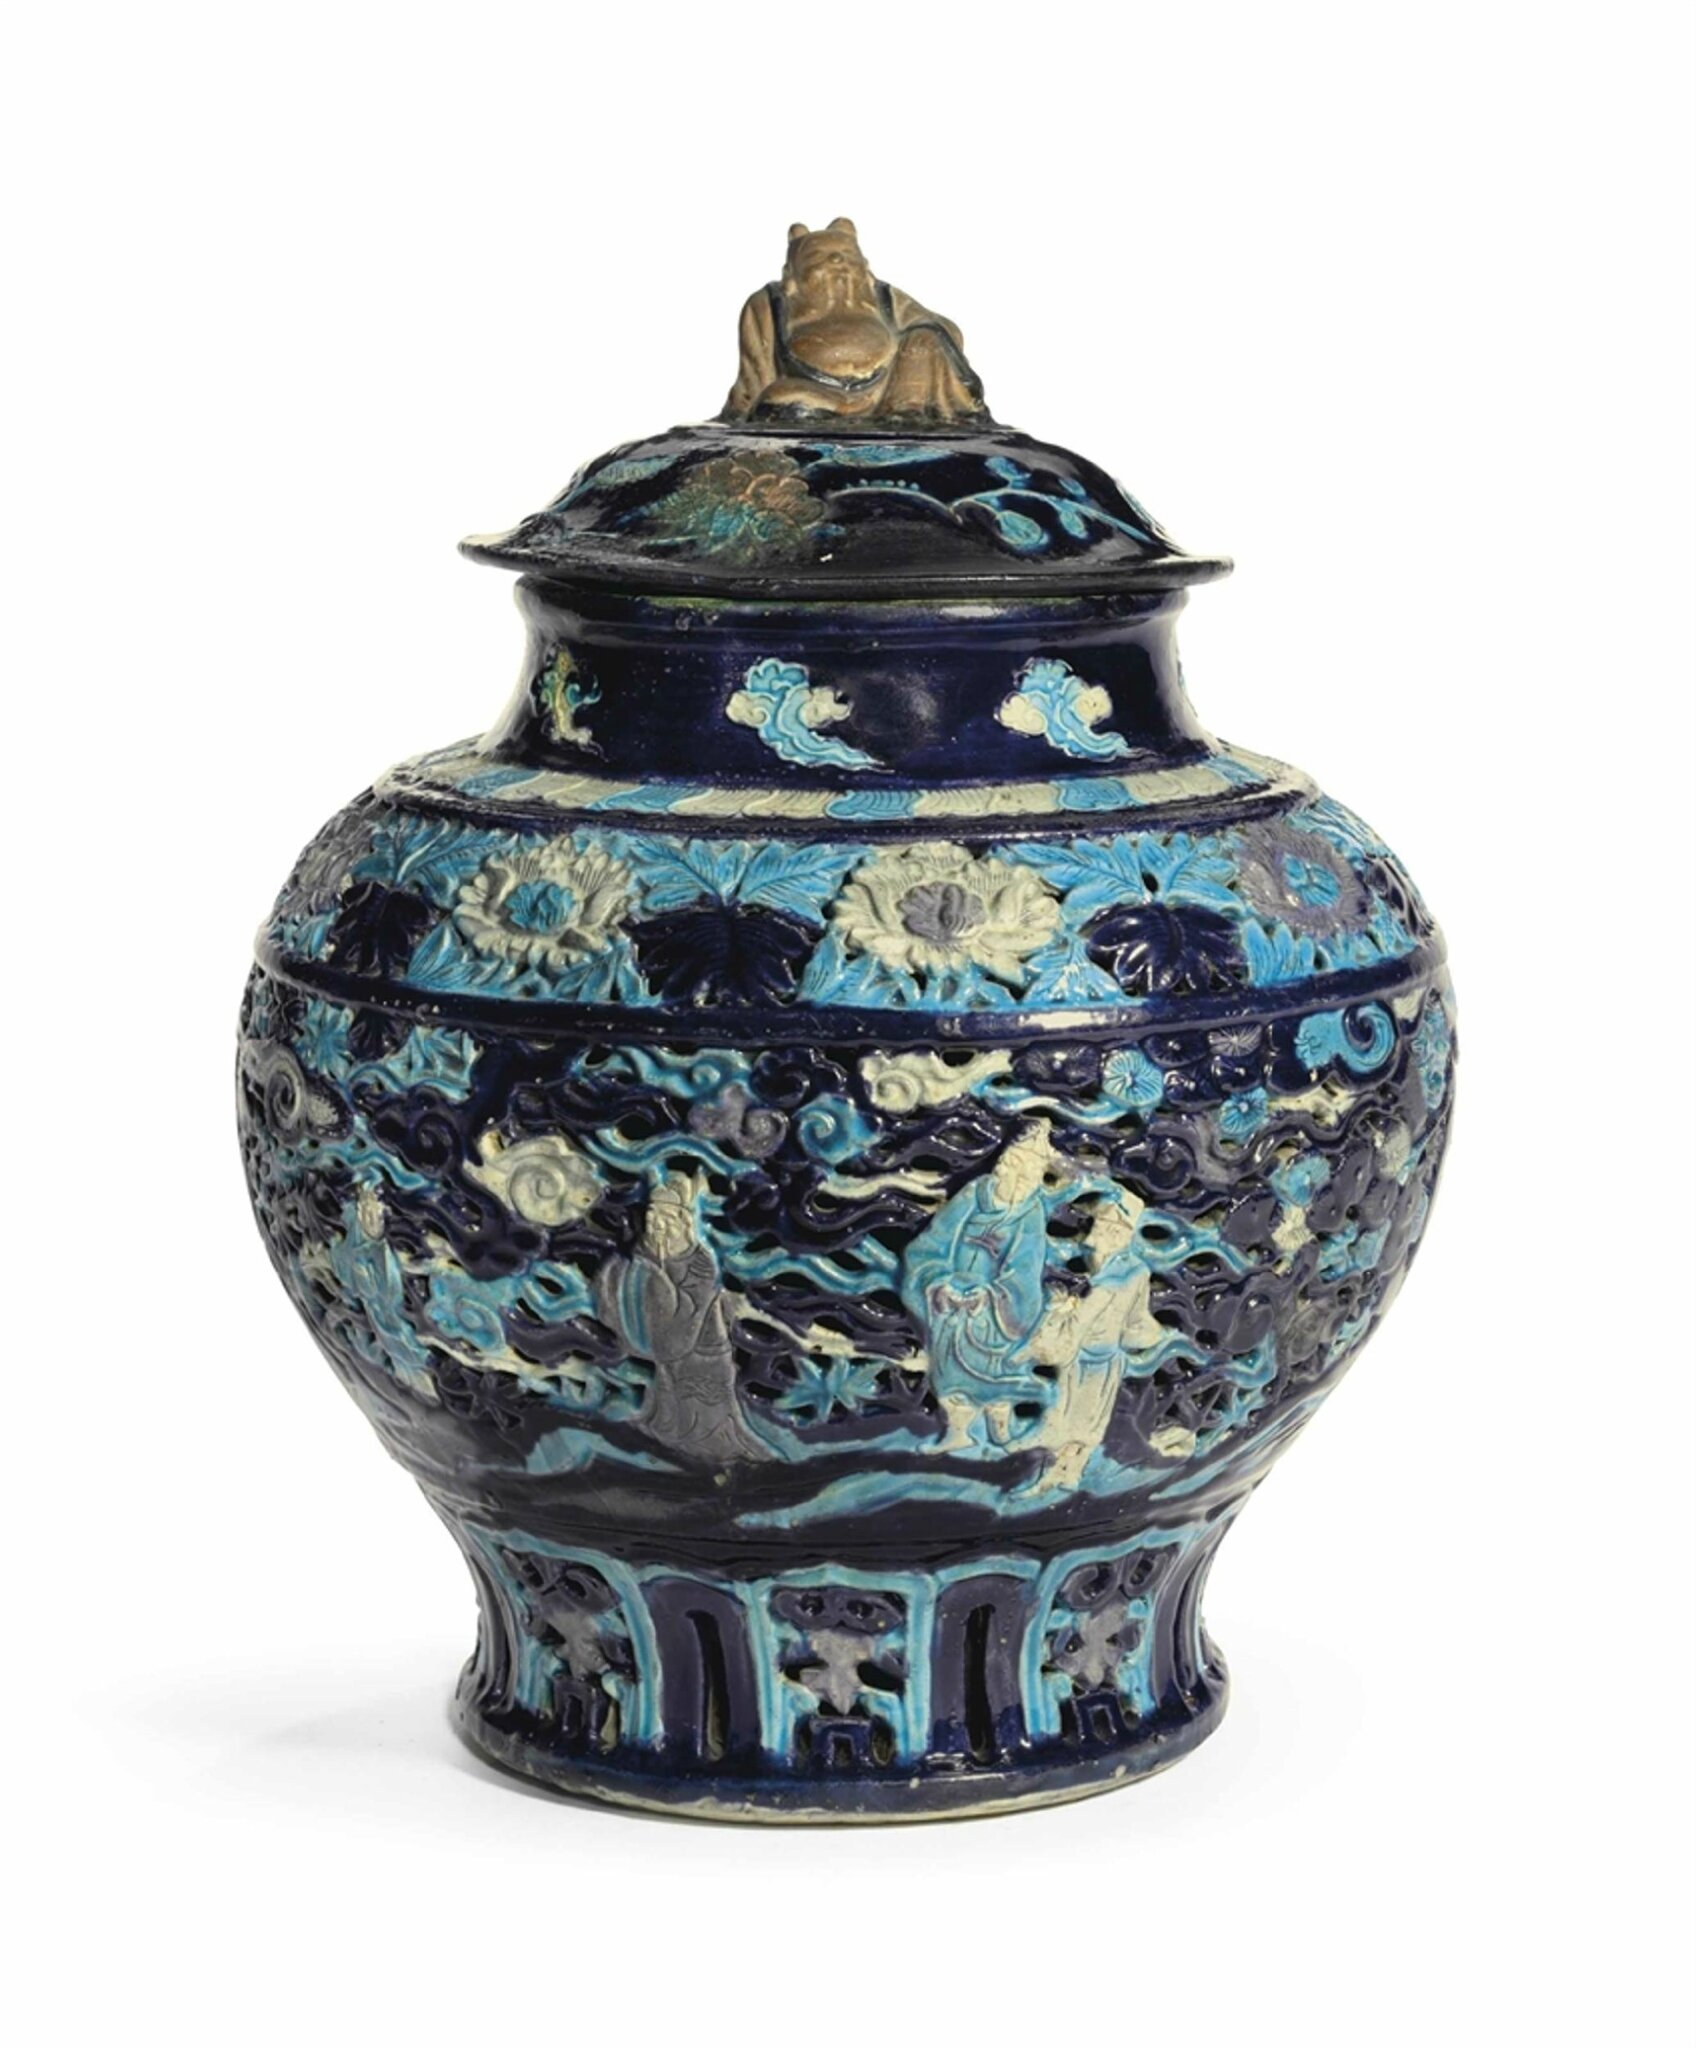 A large Fahua reticulated jar and cover, Ming dynasty, 15th-16th century